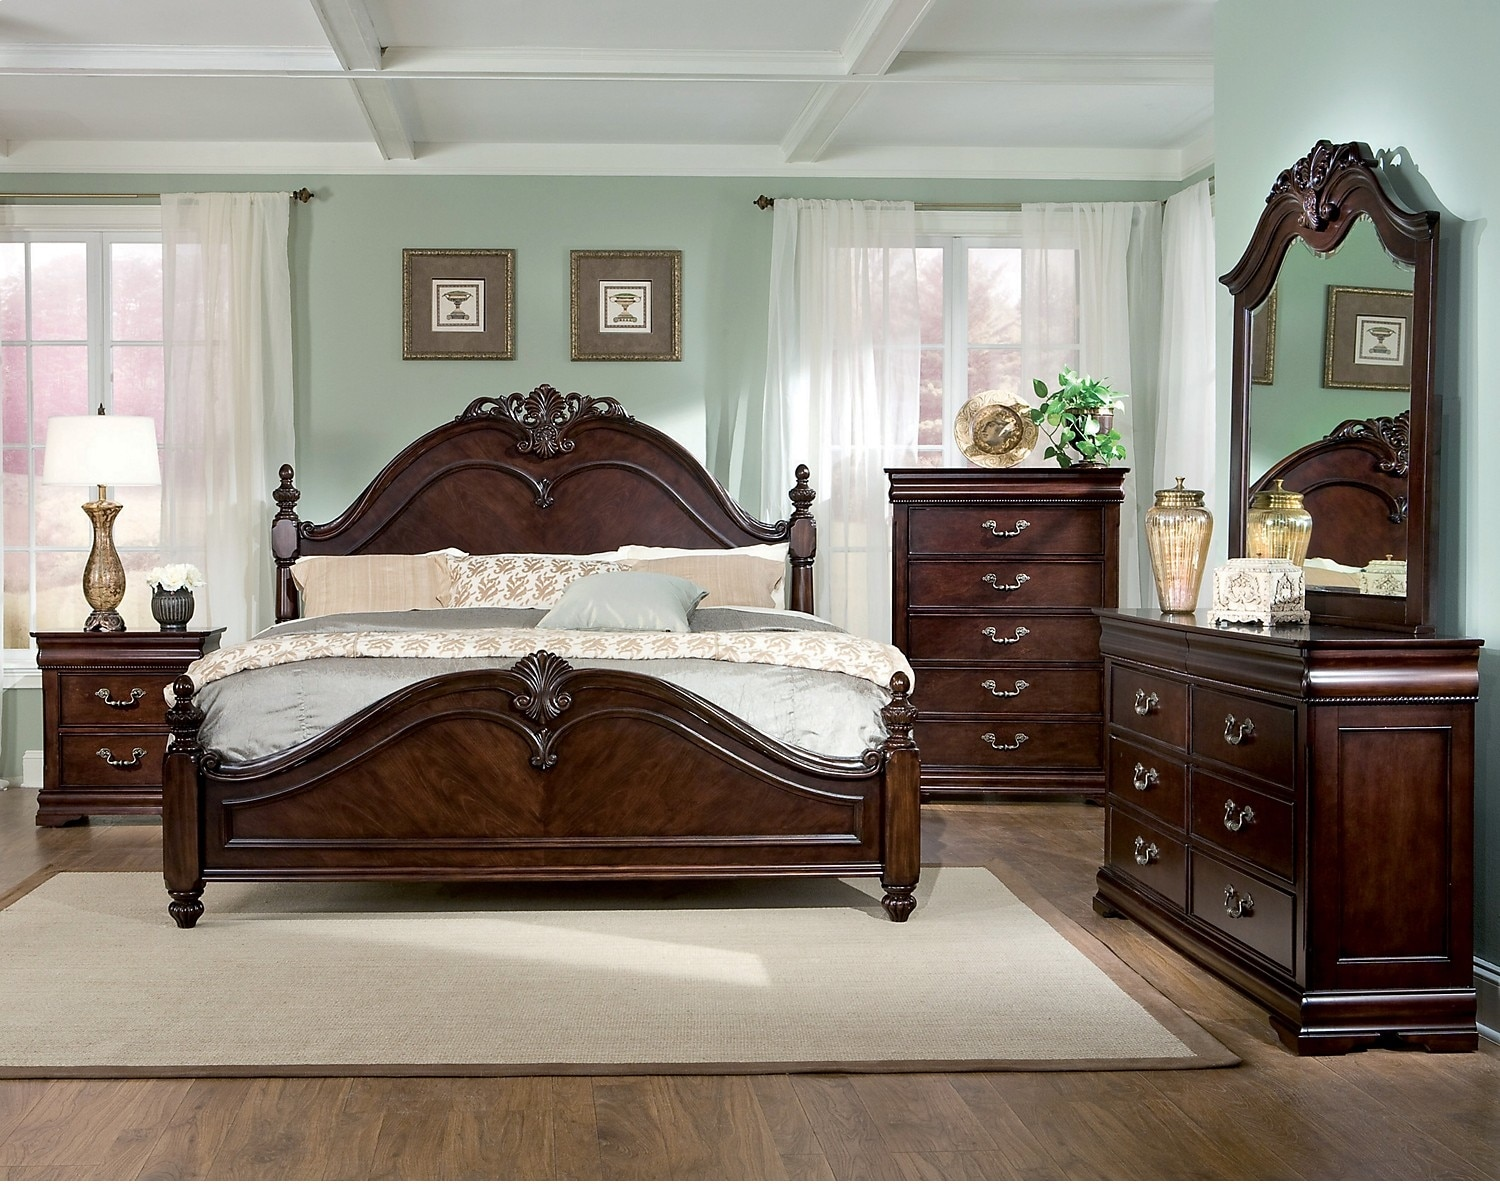 Queen Bedroom Sets Under 1000 sonata 5 piece queen size bedroom setelements. verra 5 piece